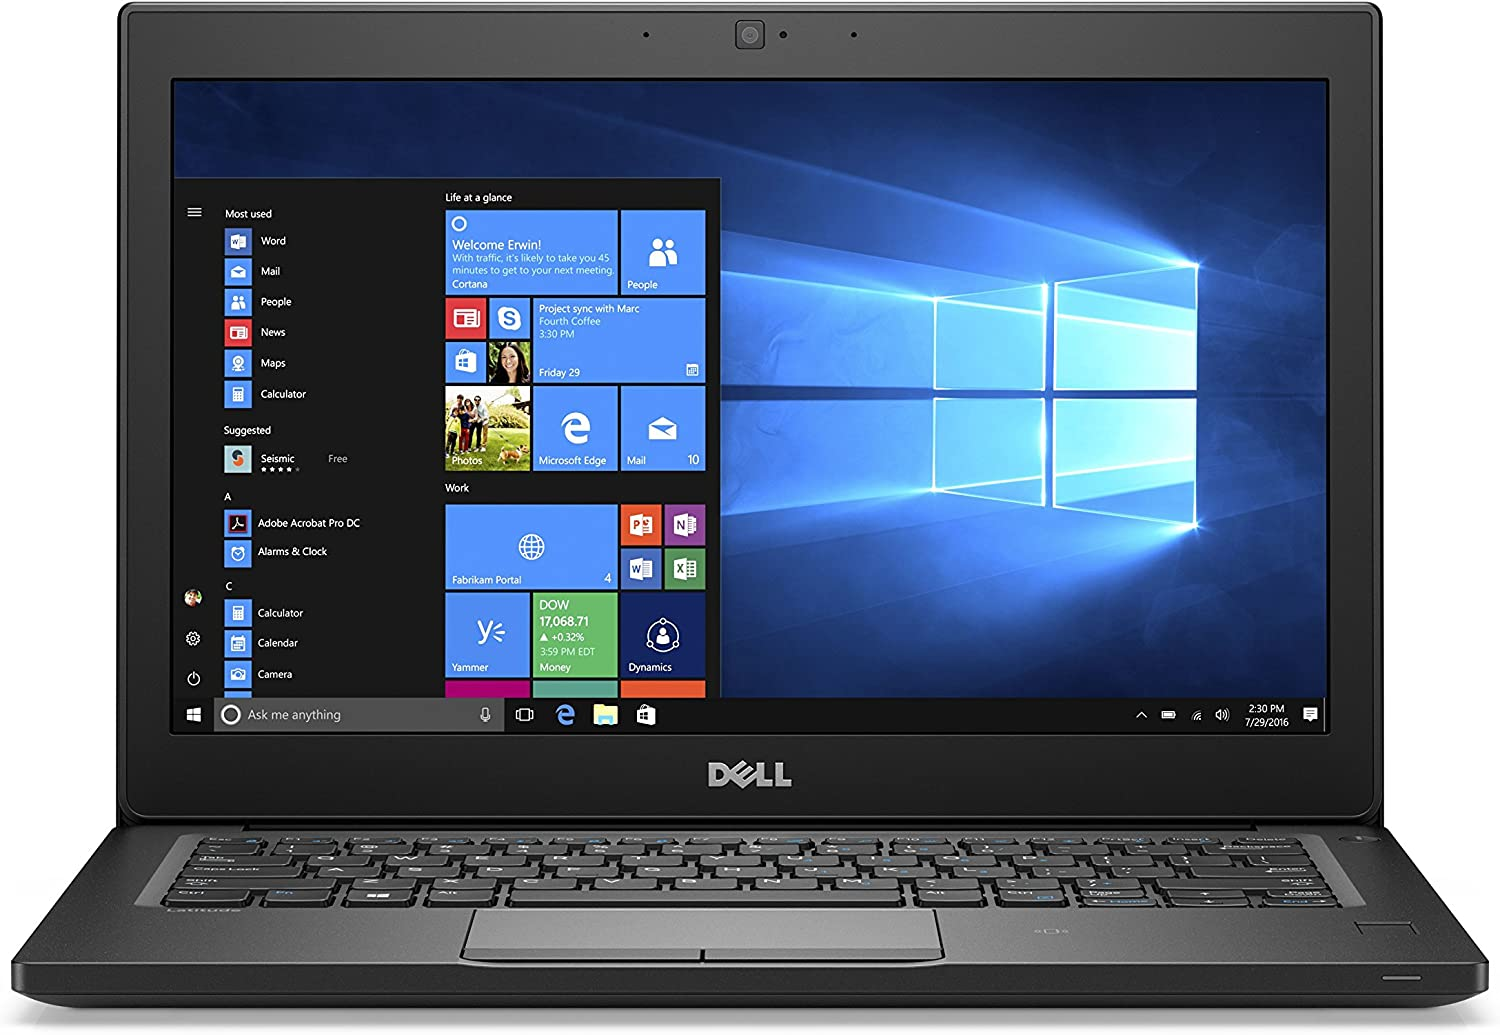 Dell Latitude 7280 Intel Core 12.5 inch FHD i7-7600U 16GB DDR4 512GB SSD Windows 10 Pro Business Ultrabook